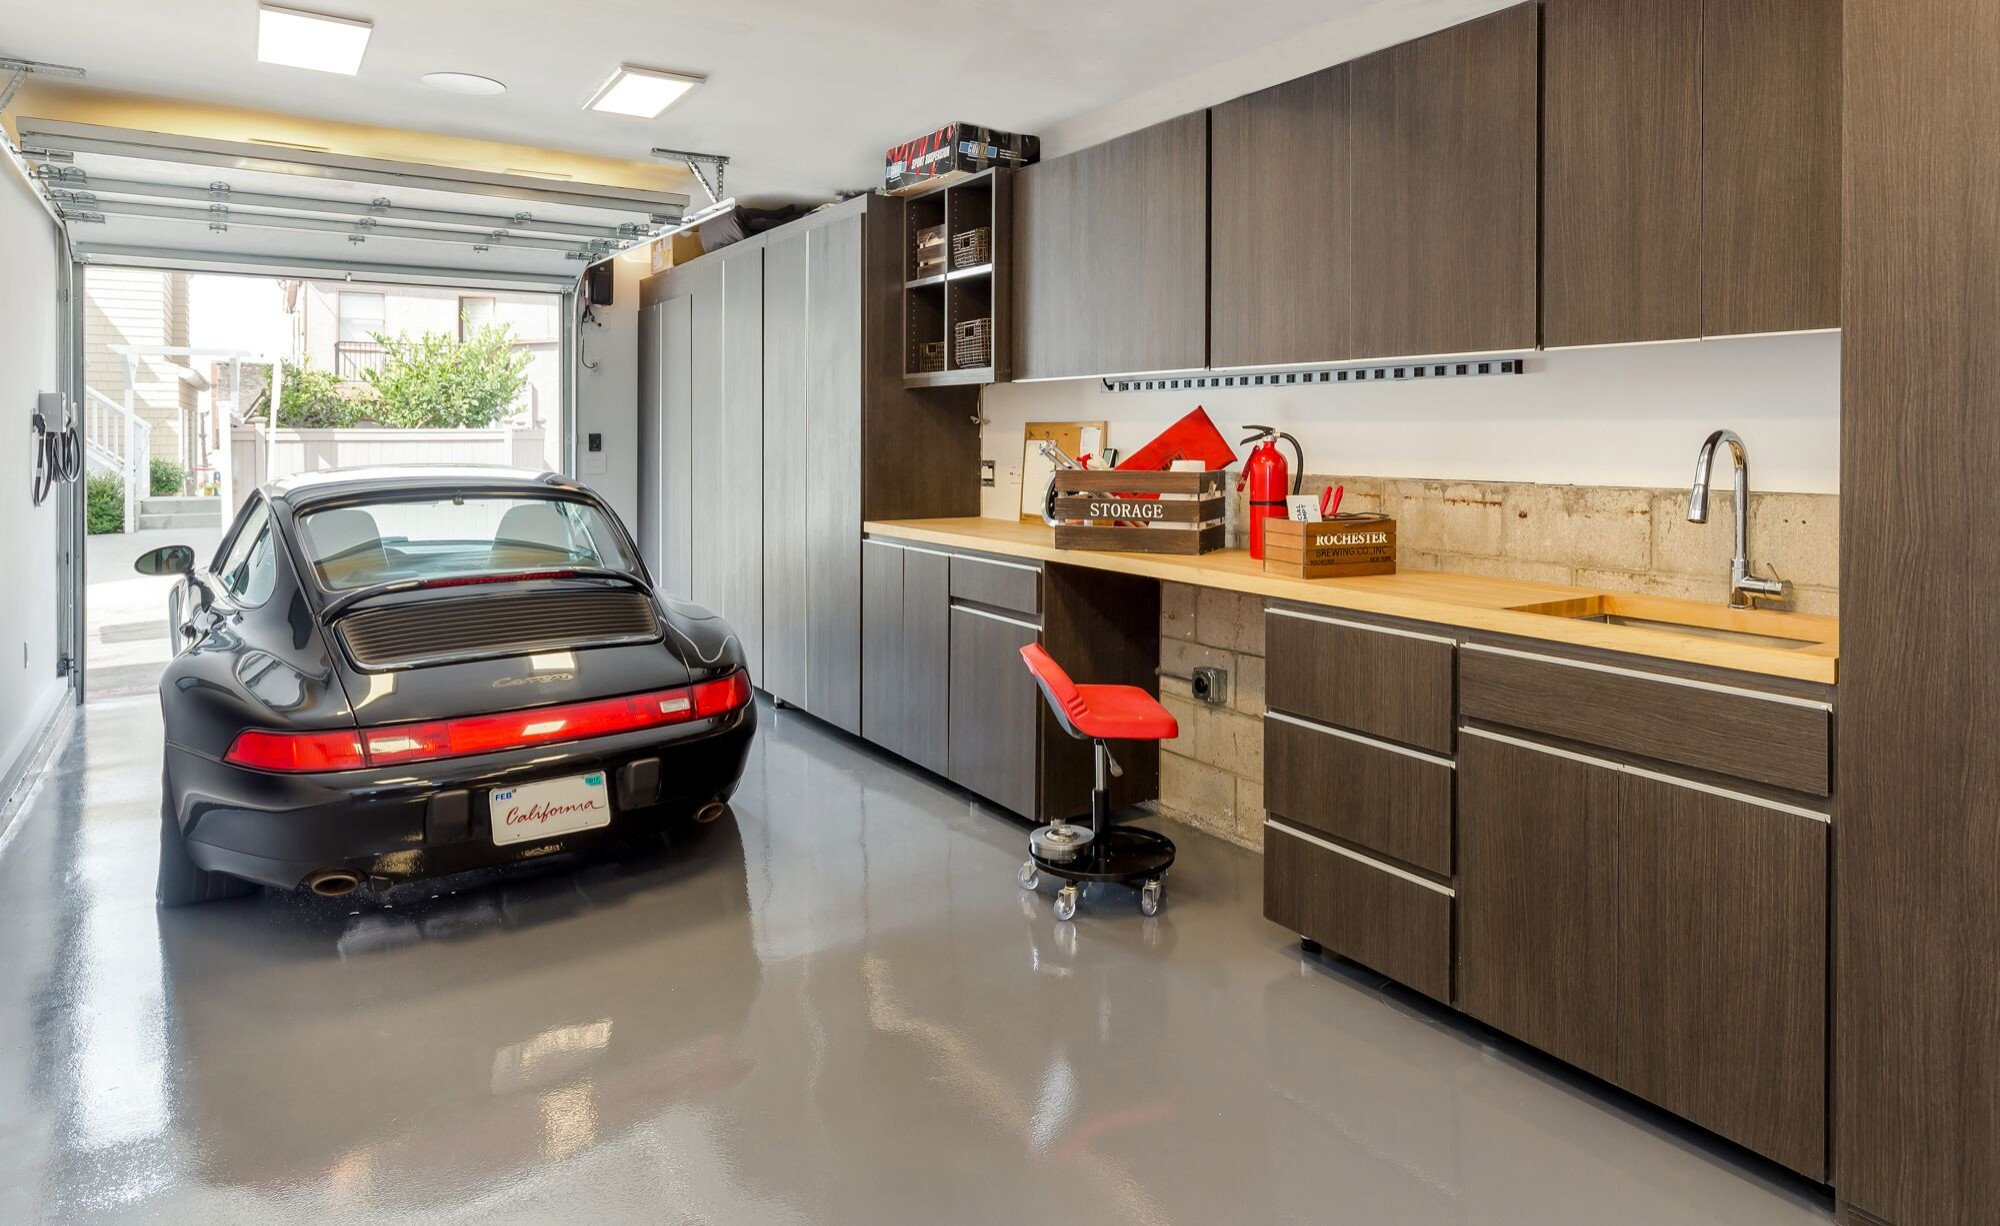 75 Beautiful Small Garage Pictures Ideas October 2020 Houzz